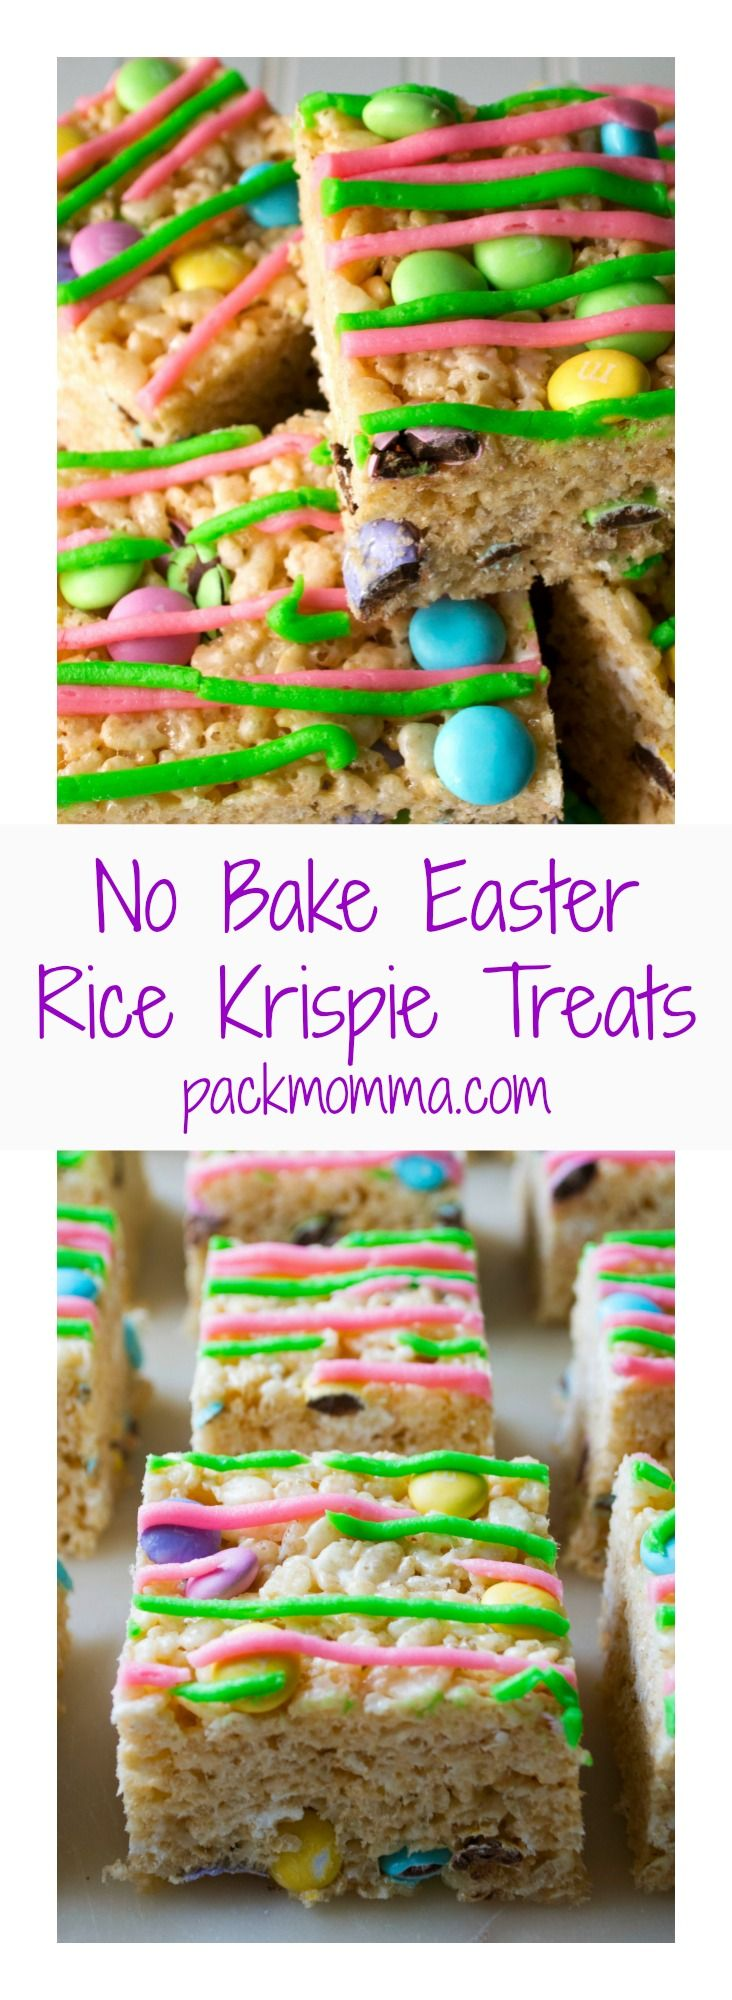 No-Bake Easter Rice Krispie Treats are the perfect no bake dessert to celebrate Springtime and Easter. #easter #ricekrispietreats #easterricekrispietreats #easterricecrispytreats #nobakedessert #nobaketreats via @awickedwhisk